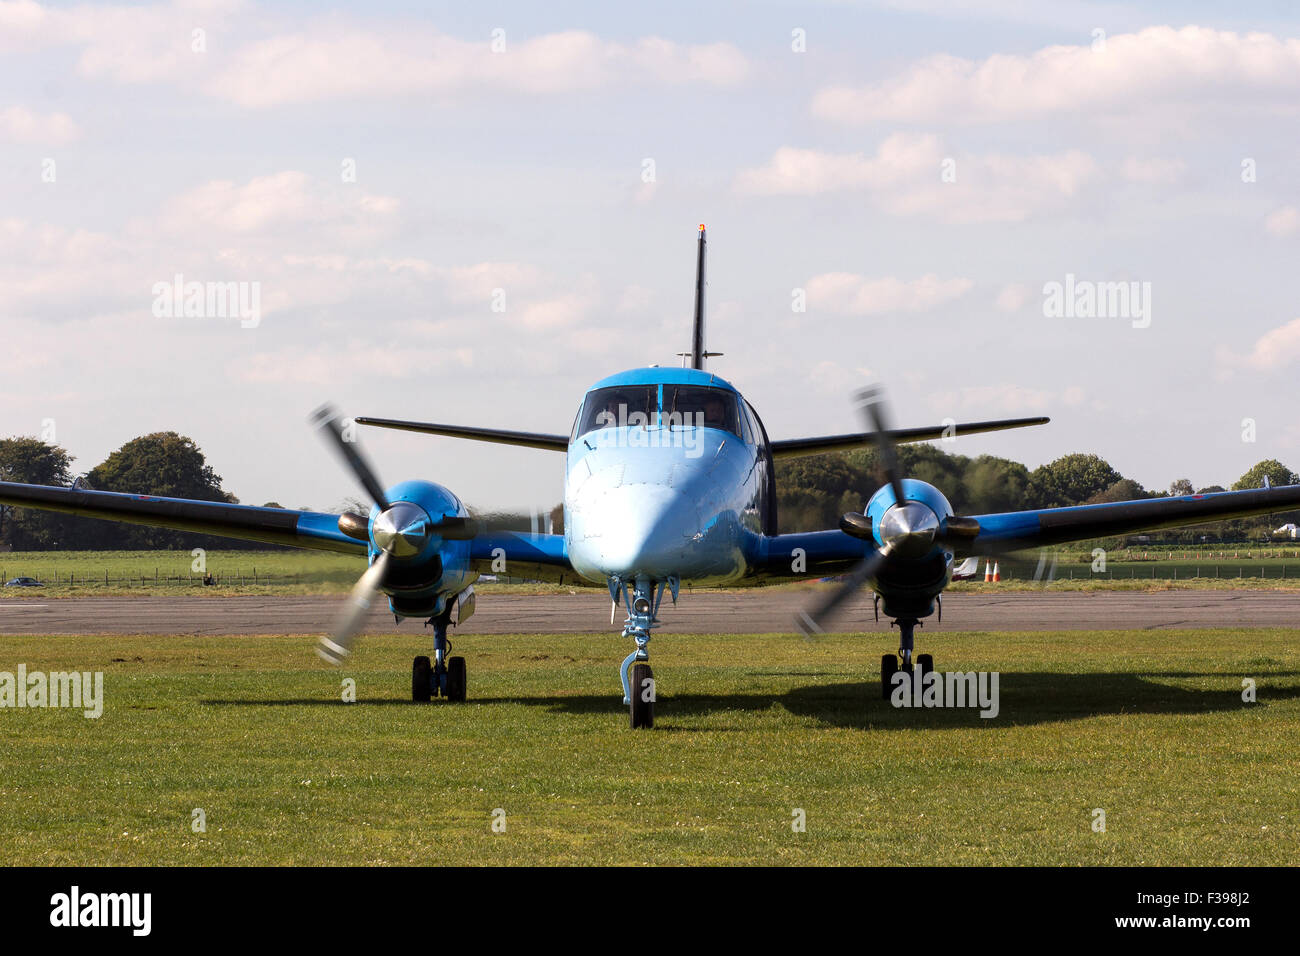 Taxiing, also sometimes written 'taxying', is the movement of an aircraft on the ground, under its own power, - Stock Image